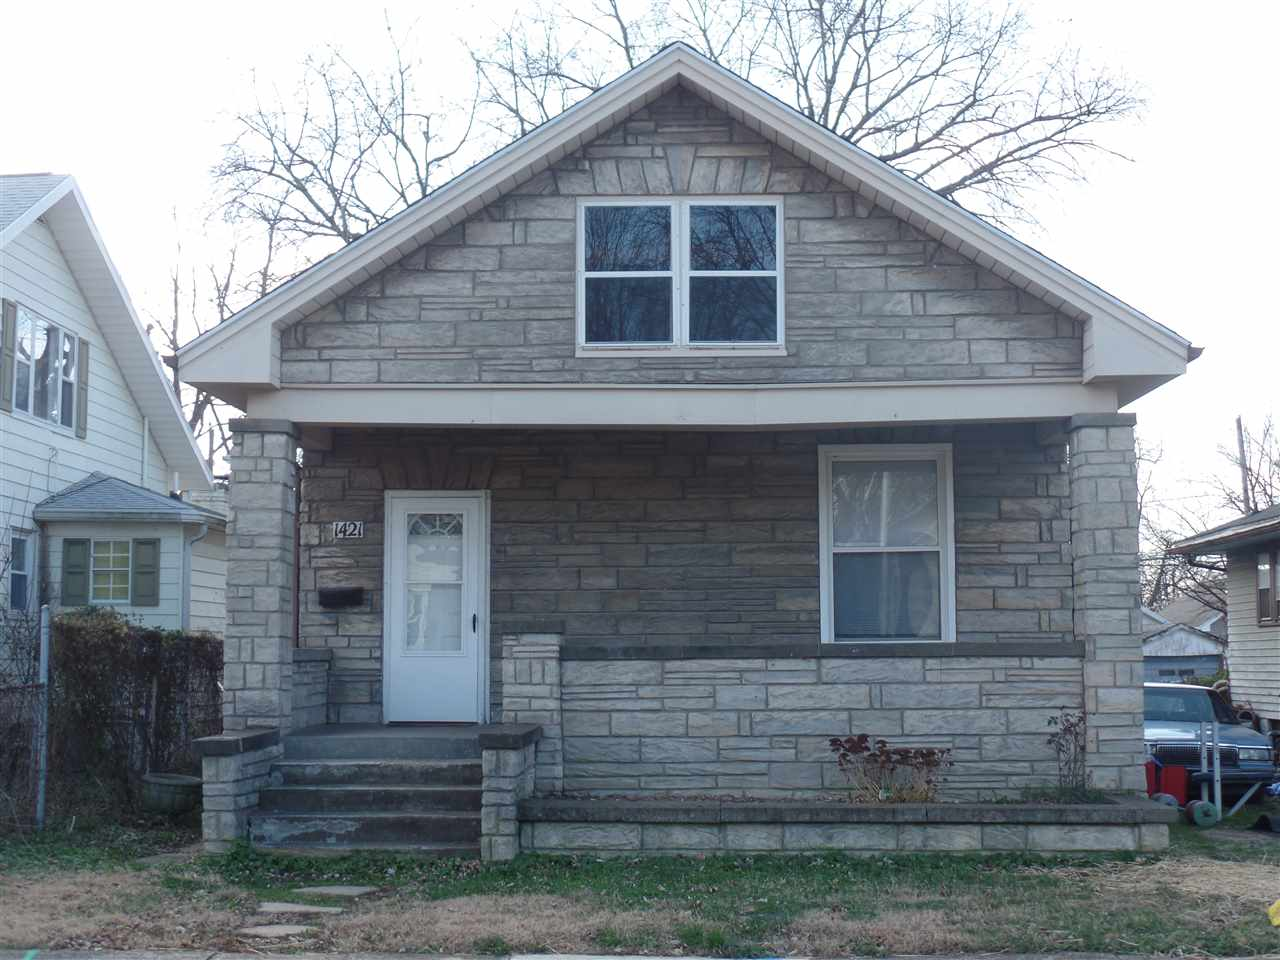 1421 E Sycamore St, Evansville, IN 47714